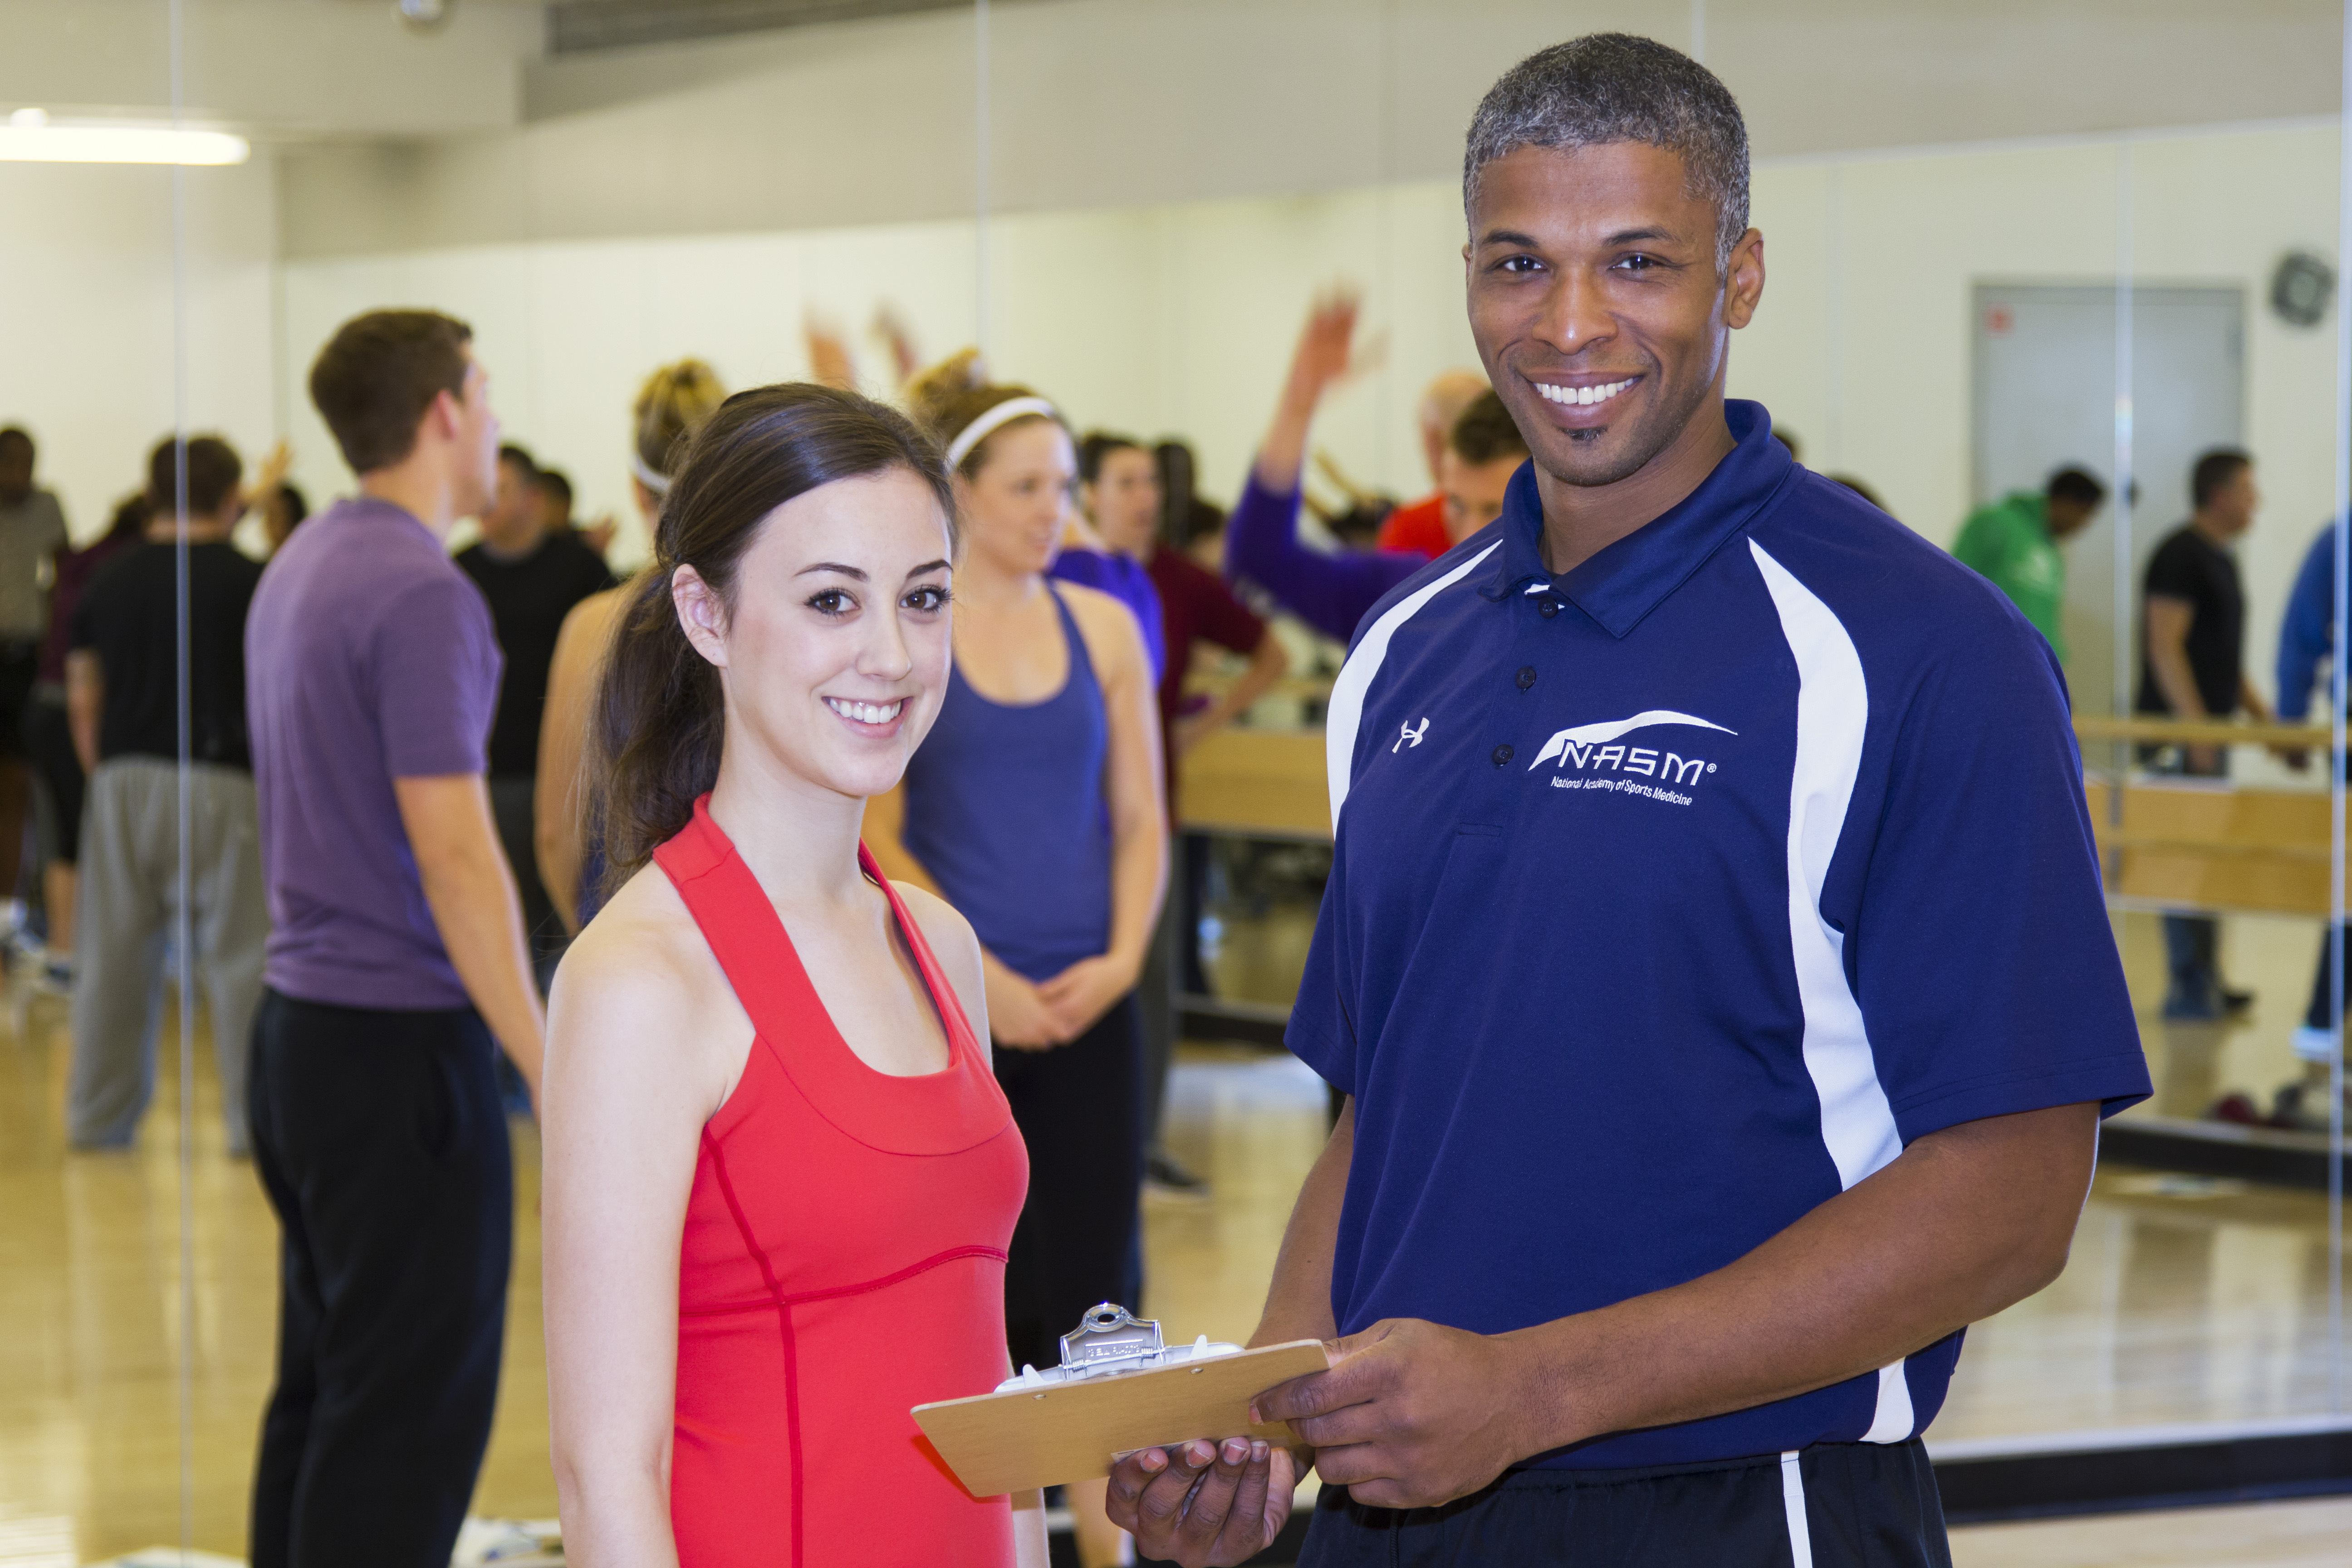 NASM certified personal trainer offering expertise during Fitness Week (Photo: Business Wire)